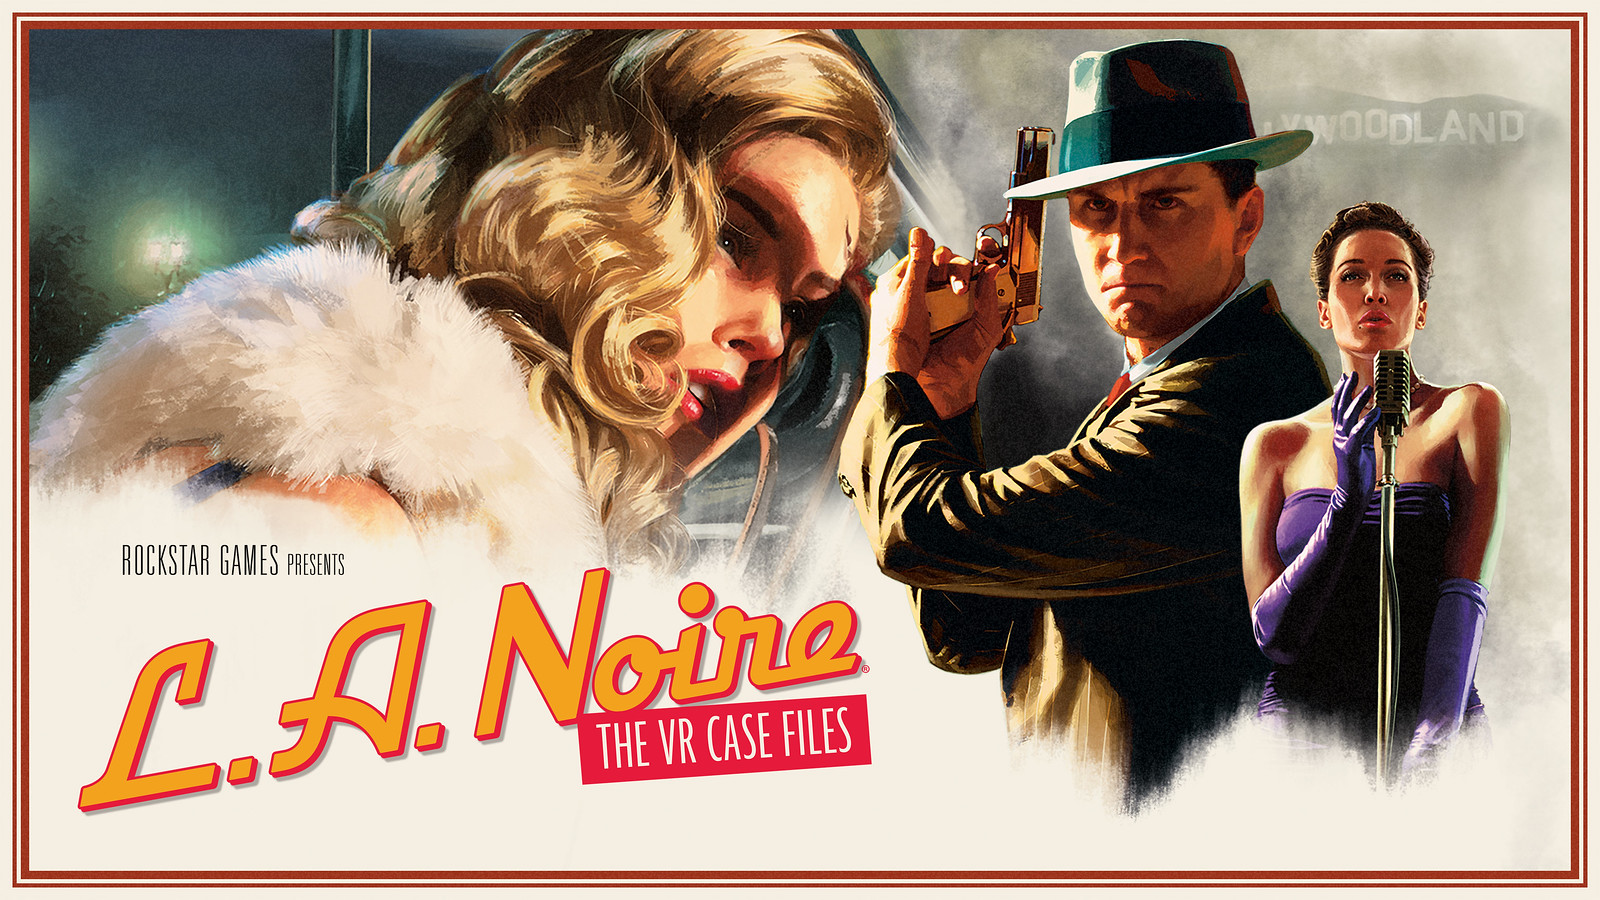 L.A. Noire: The VR Case Files on PS4